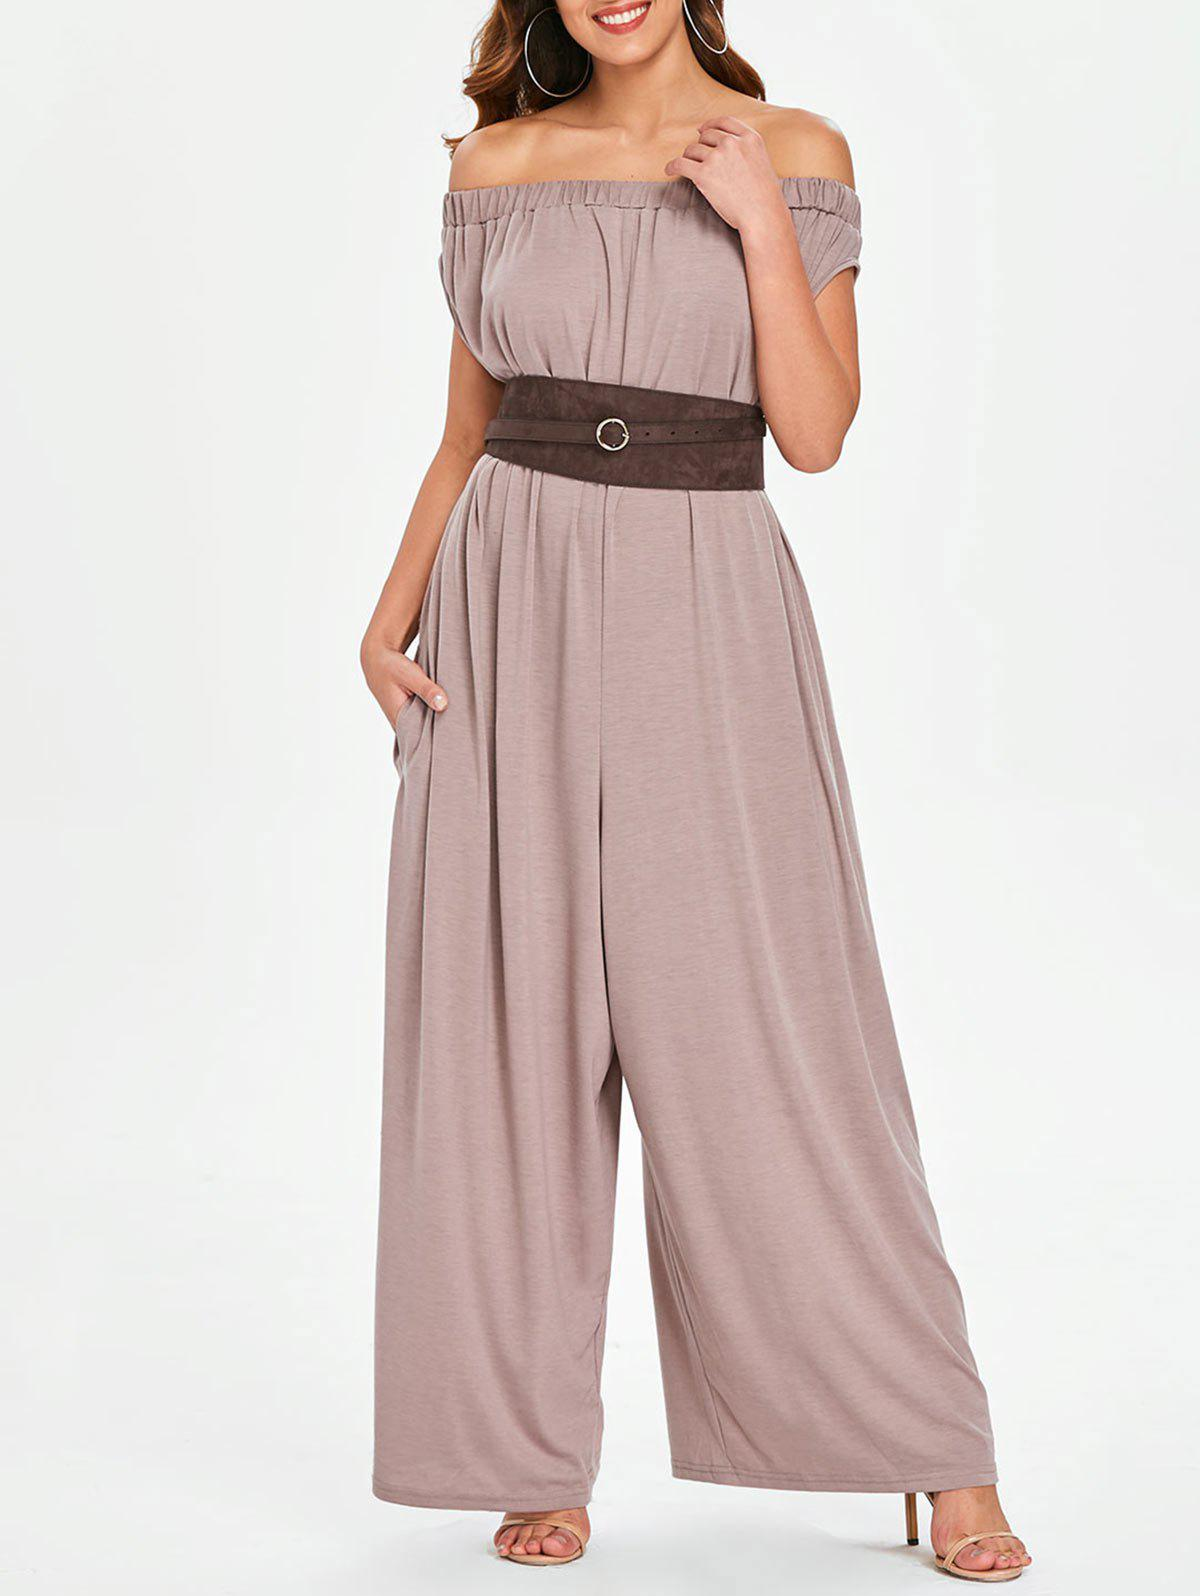 Fashion Short Sleeve Off The Shoulder Jumpsuit